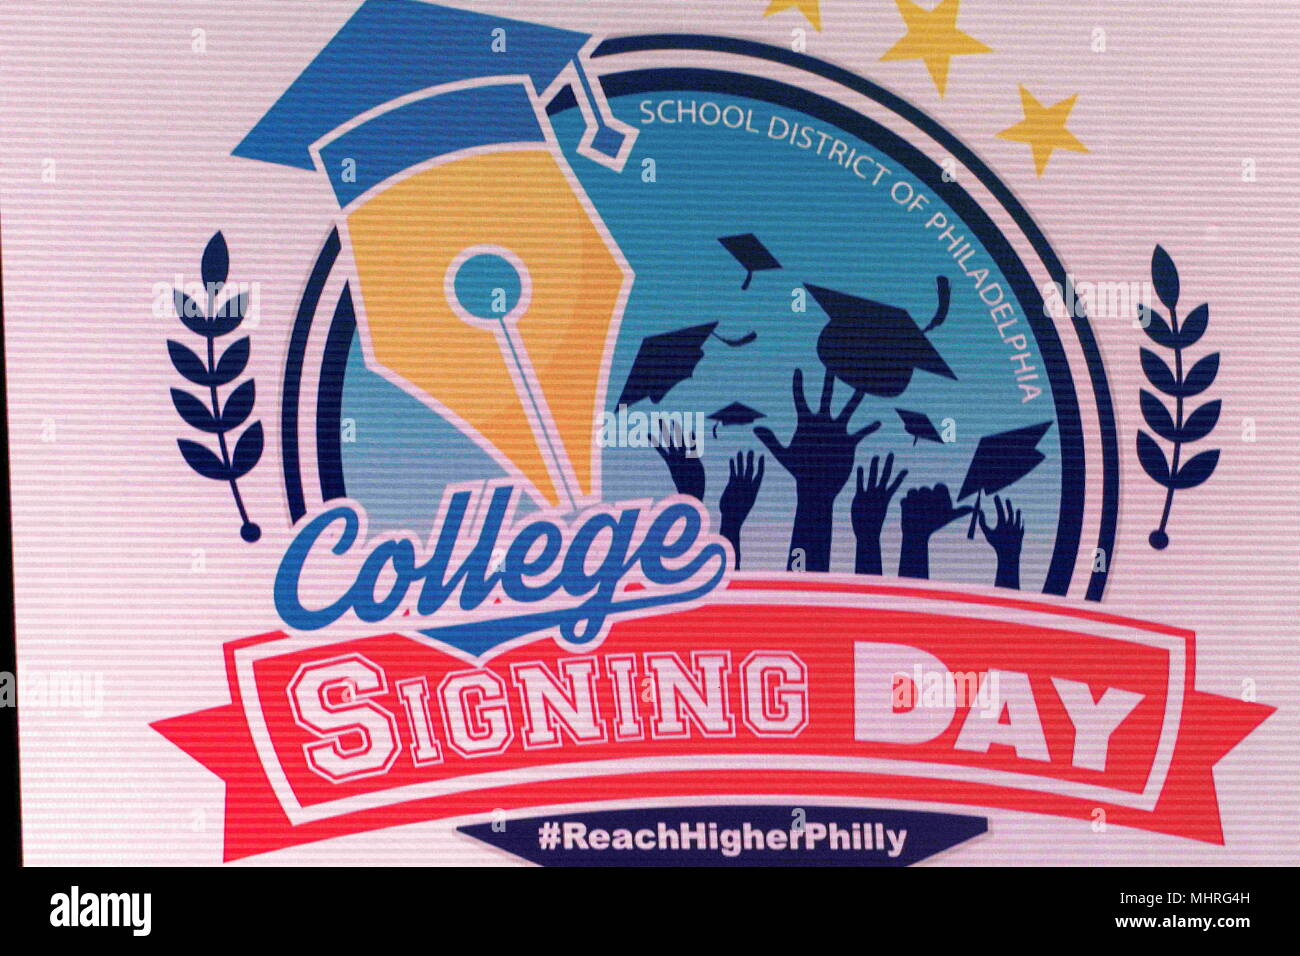 Philadelphia, Pennsylvania, USA. 2nd May, 2018. College signing day sign at Temple University's Liacouras Center in Philadelphia Pennsylvania Credit: Ricky Fitchett/ZUMA Wire/Alamy Live News Stock Photo